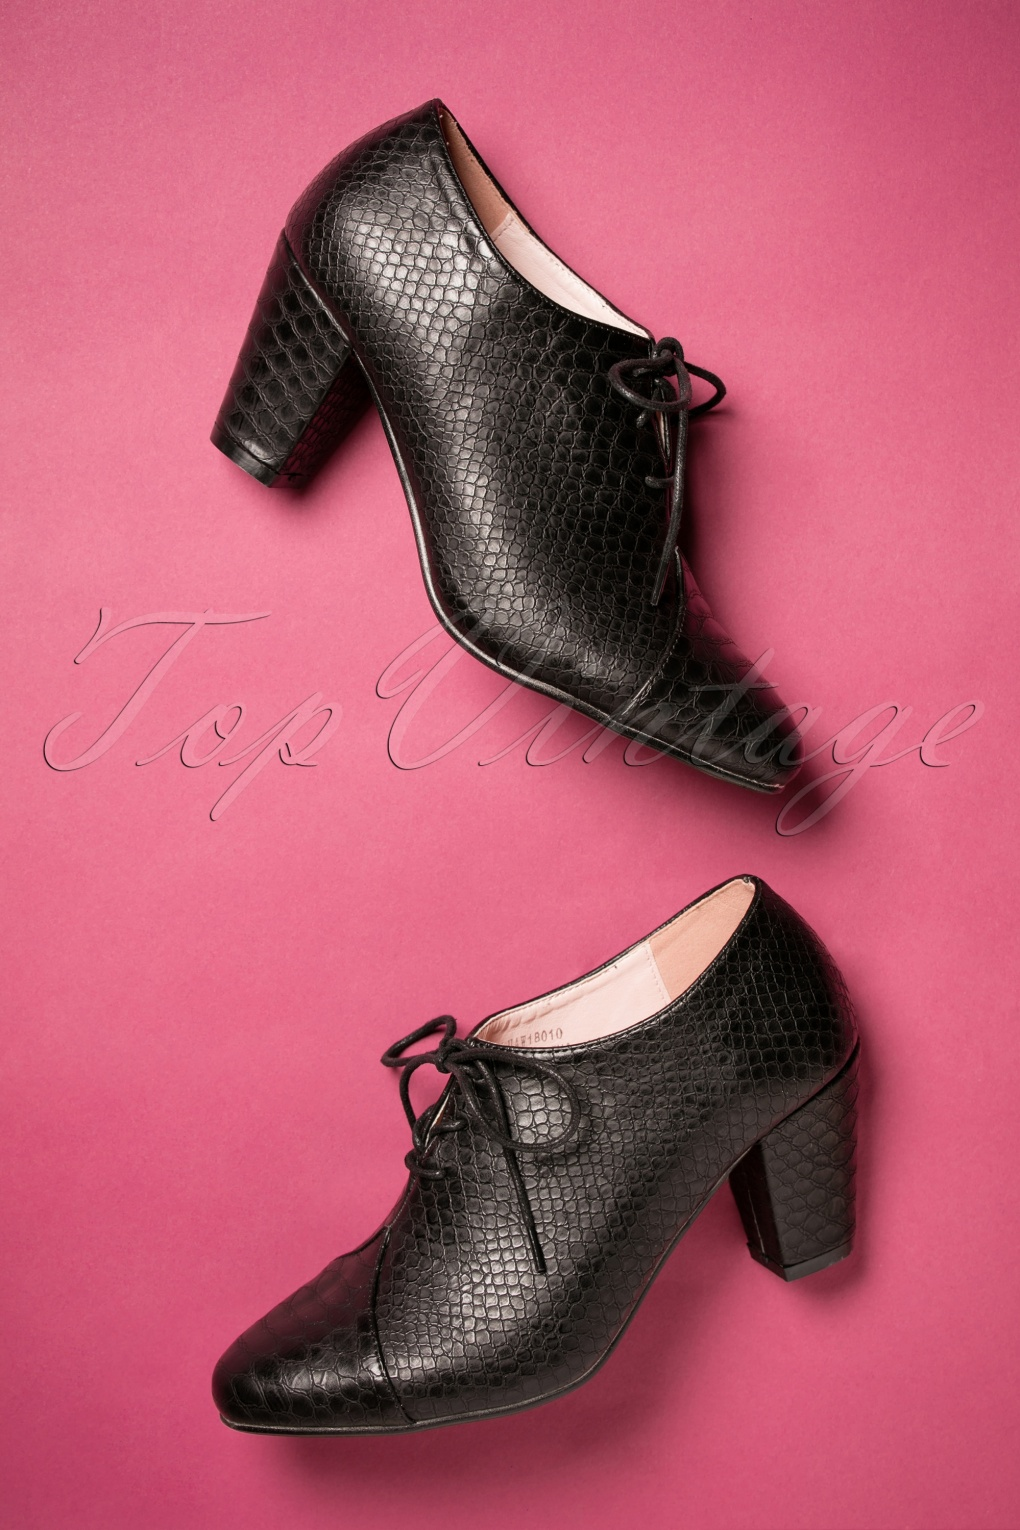 1950s Style Shoes | Heels, Flats, Saddle Shoes 40s Amelia Shoe Booties in Black £46.69 AT vintagedancer.com